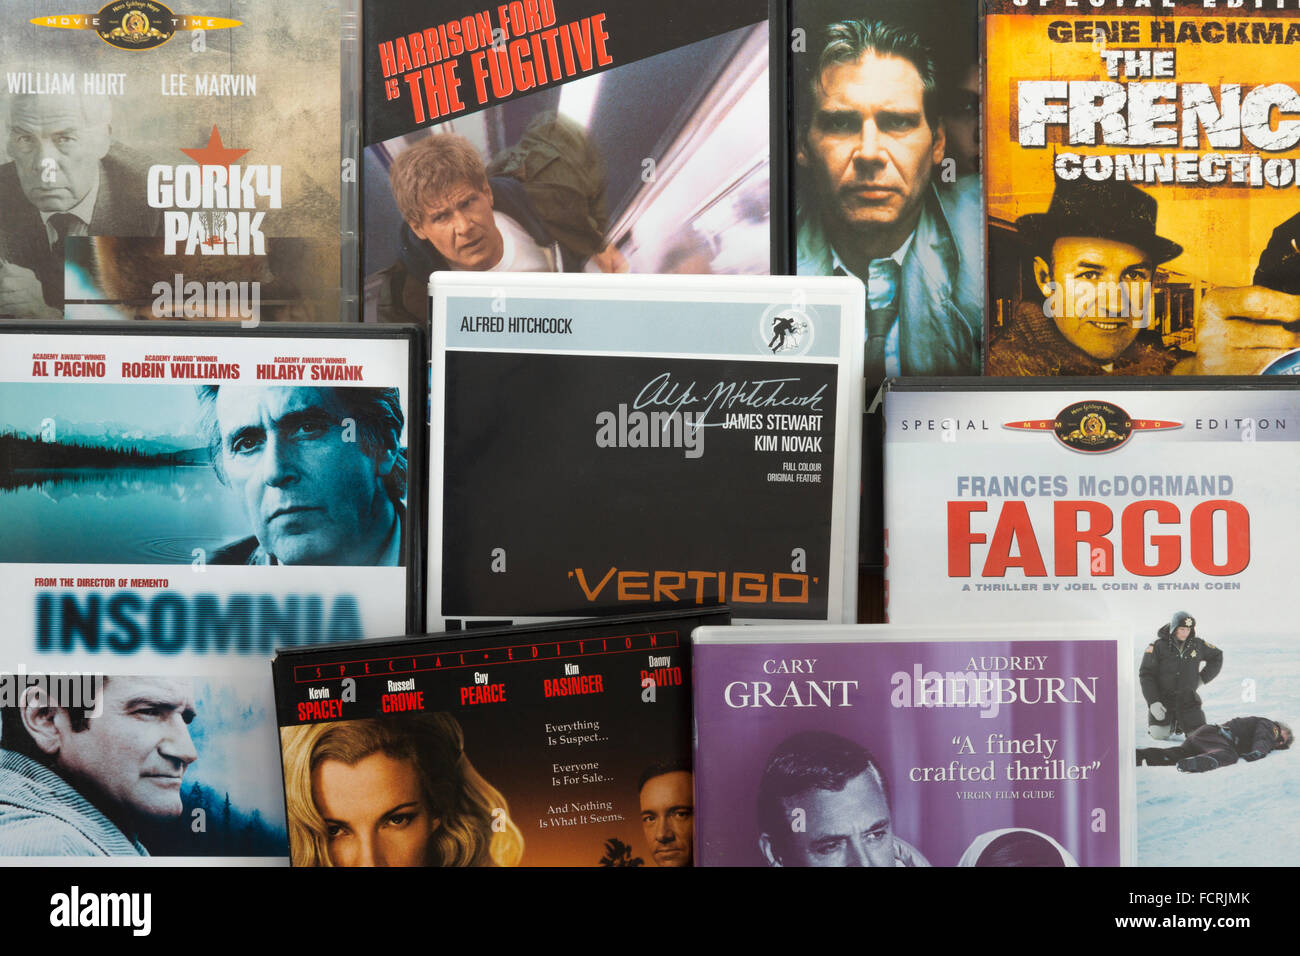 A collection of English language film DVDs showing the genre 'Thriller' - Stock Image